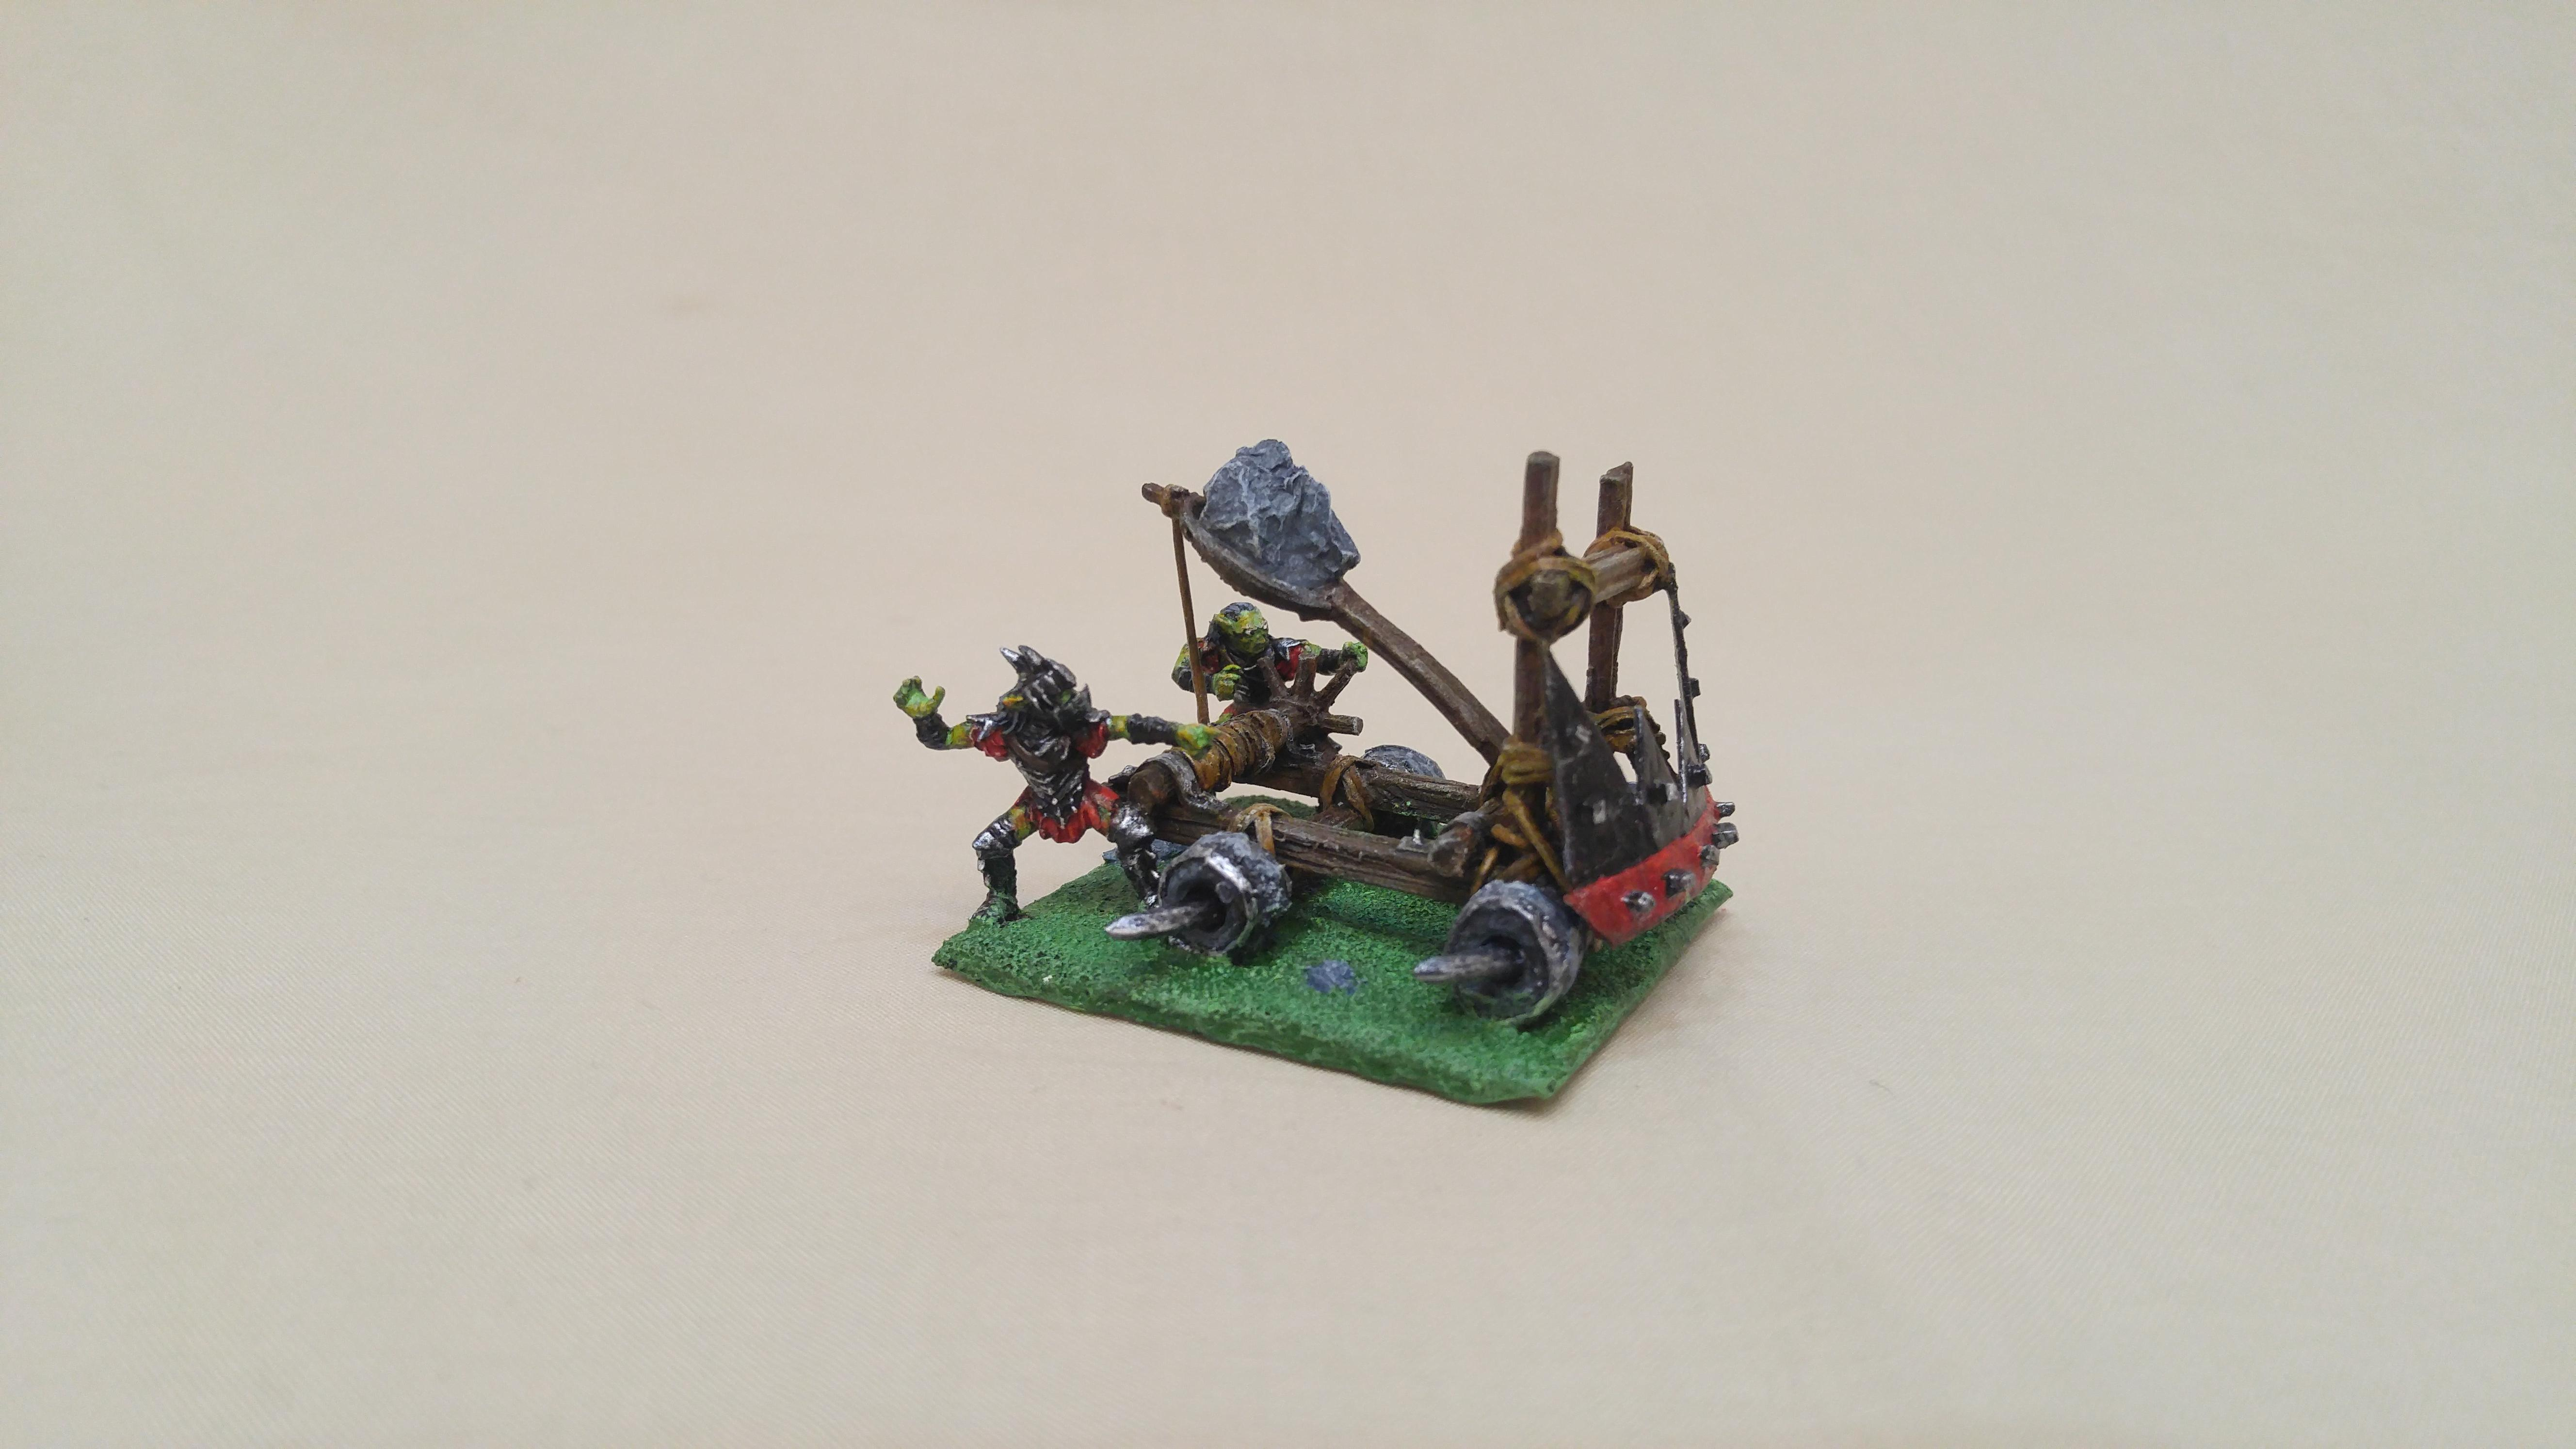 Big Rock Thrower, Catapult, Cheap, Em4, Goblins, Kings Of War, Kow, Lord Of The Rings, Moria Goblin, Orcs, Orks, Scratch Build, Sprue